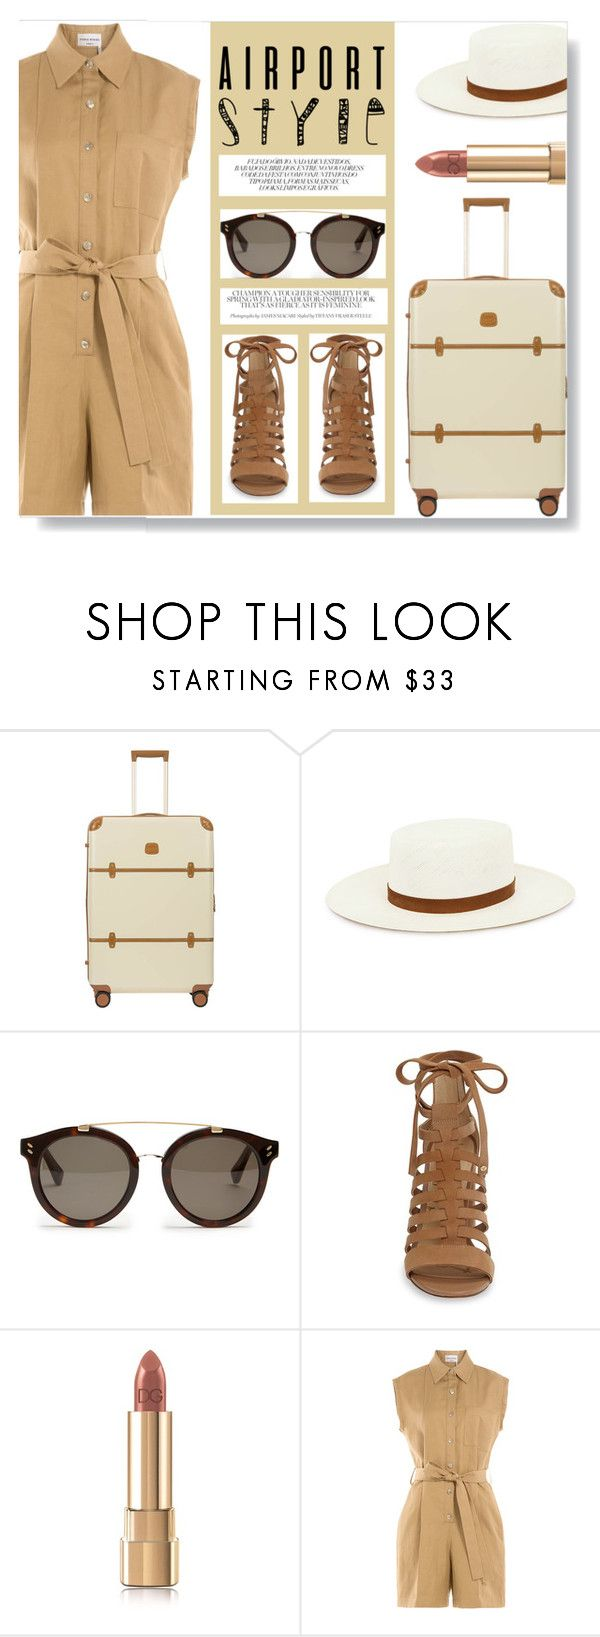 """Jet Set Style"" by keepfashion92 ❤ liked on Polyvore featuring Bric's, Janessa Leone, STELLA McCARTNEY, Sam Edelman and Sonia Rykiel"